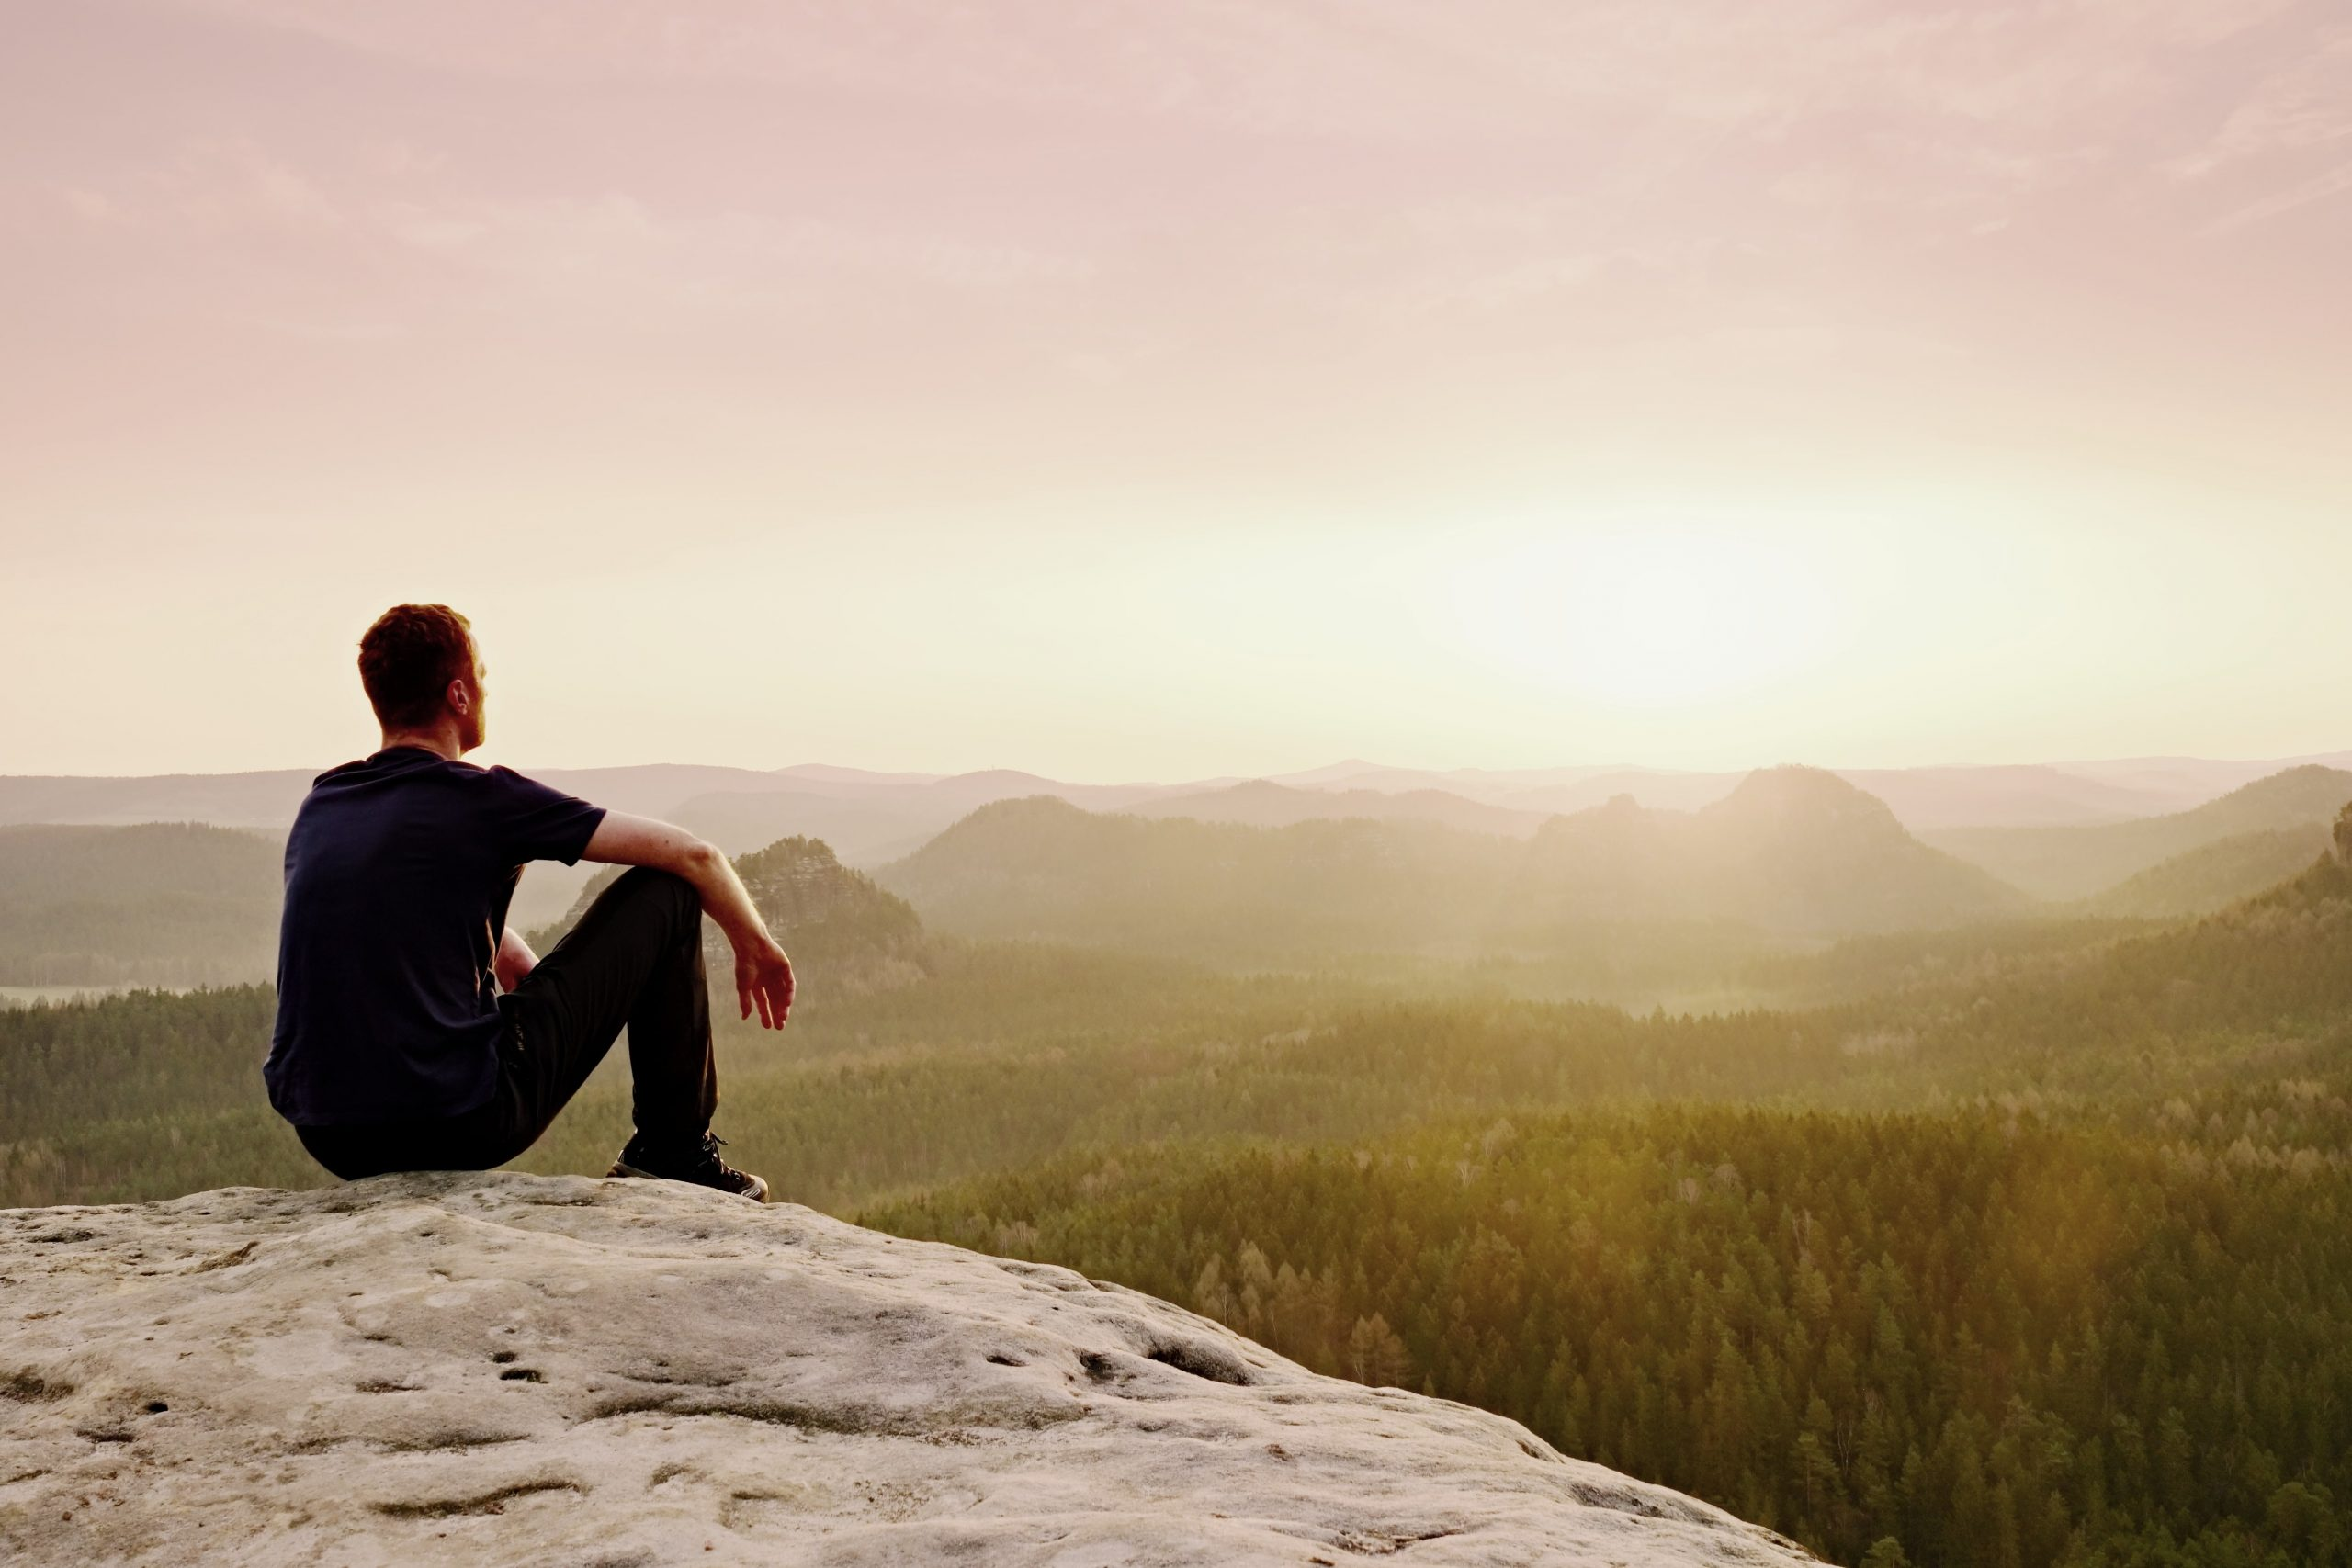 Man sitting on rock outcropping, resting and recharging in nature